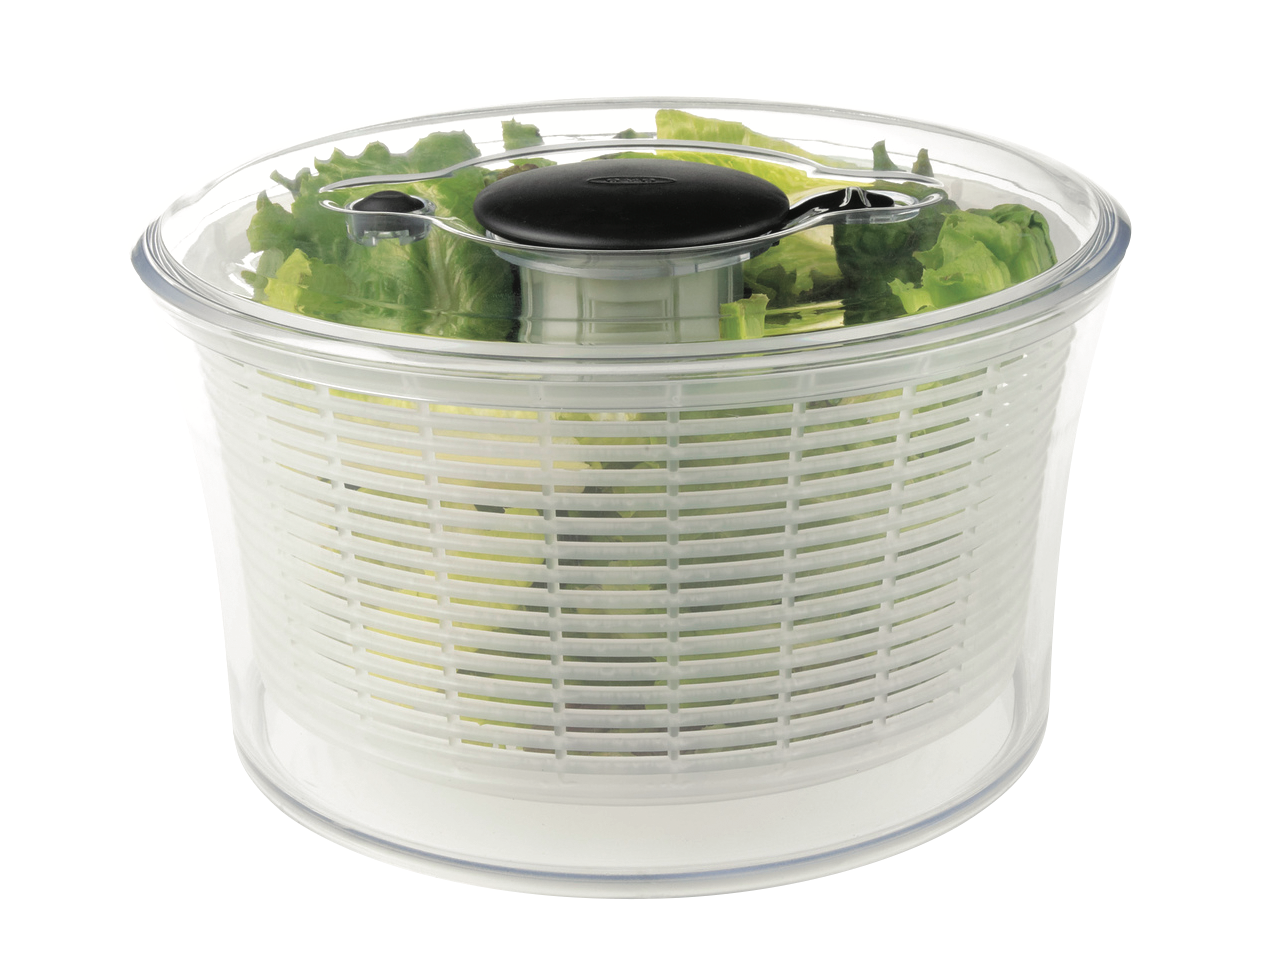 Six more ways to use your salad spinner: Oxo Good Grips Salad Spinner